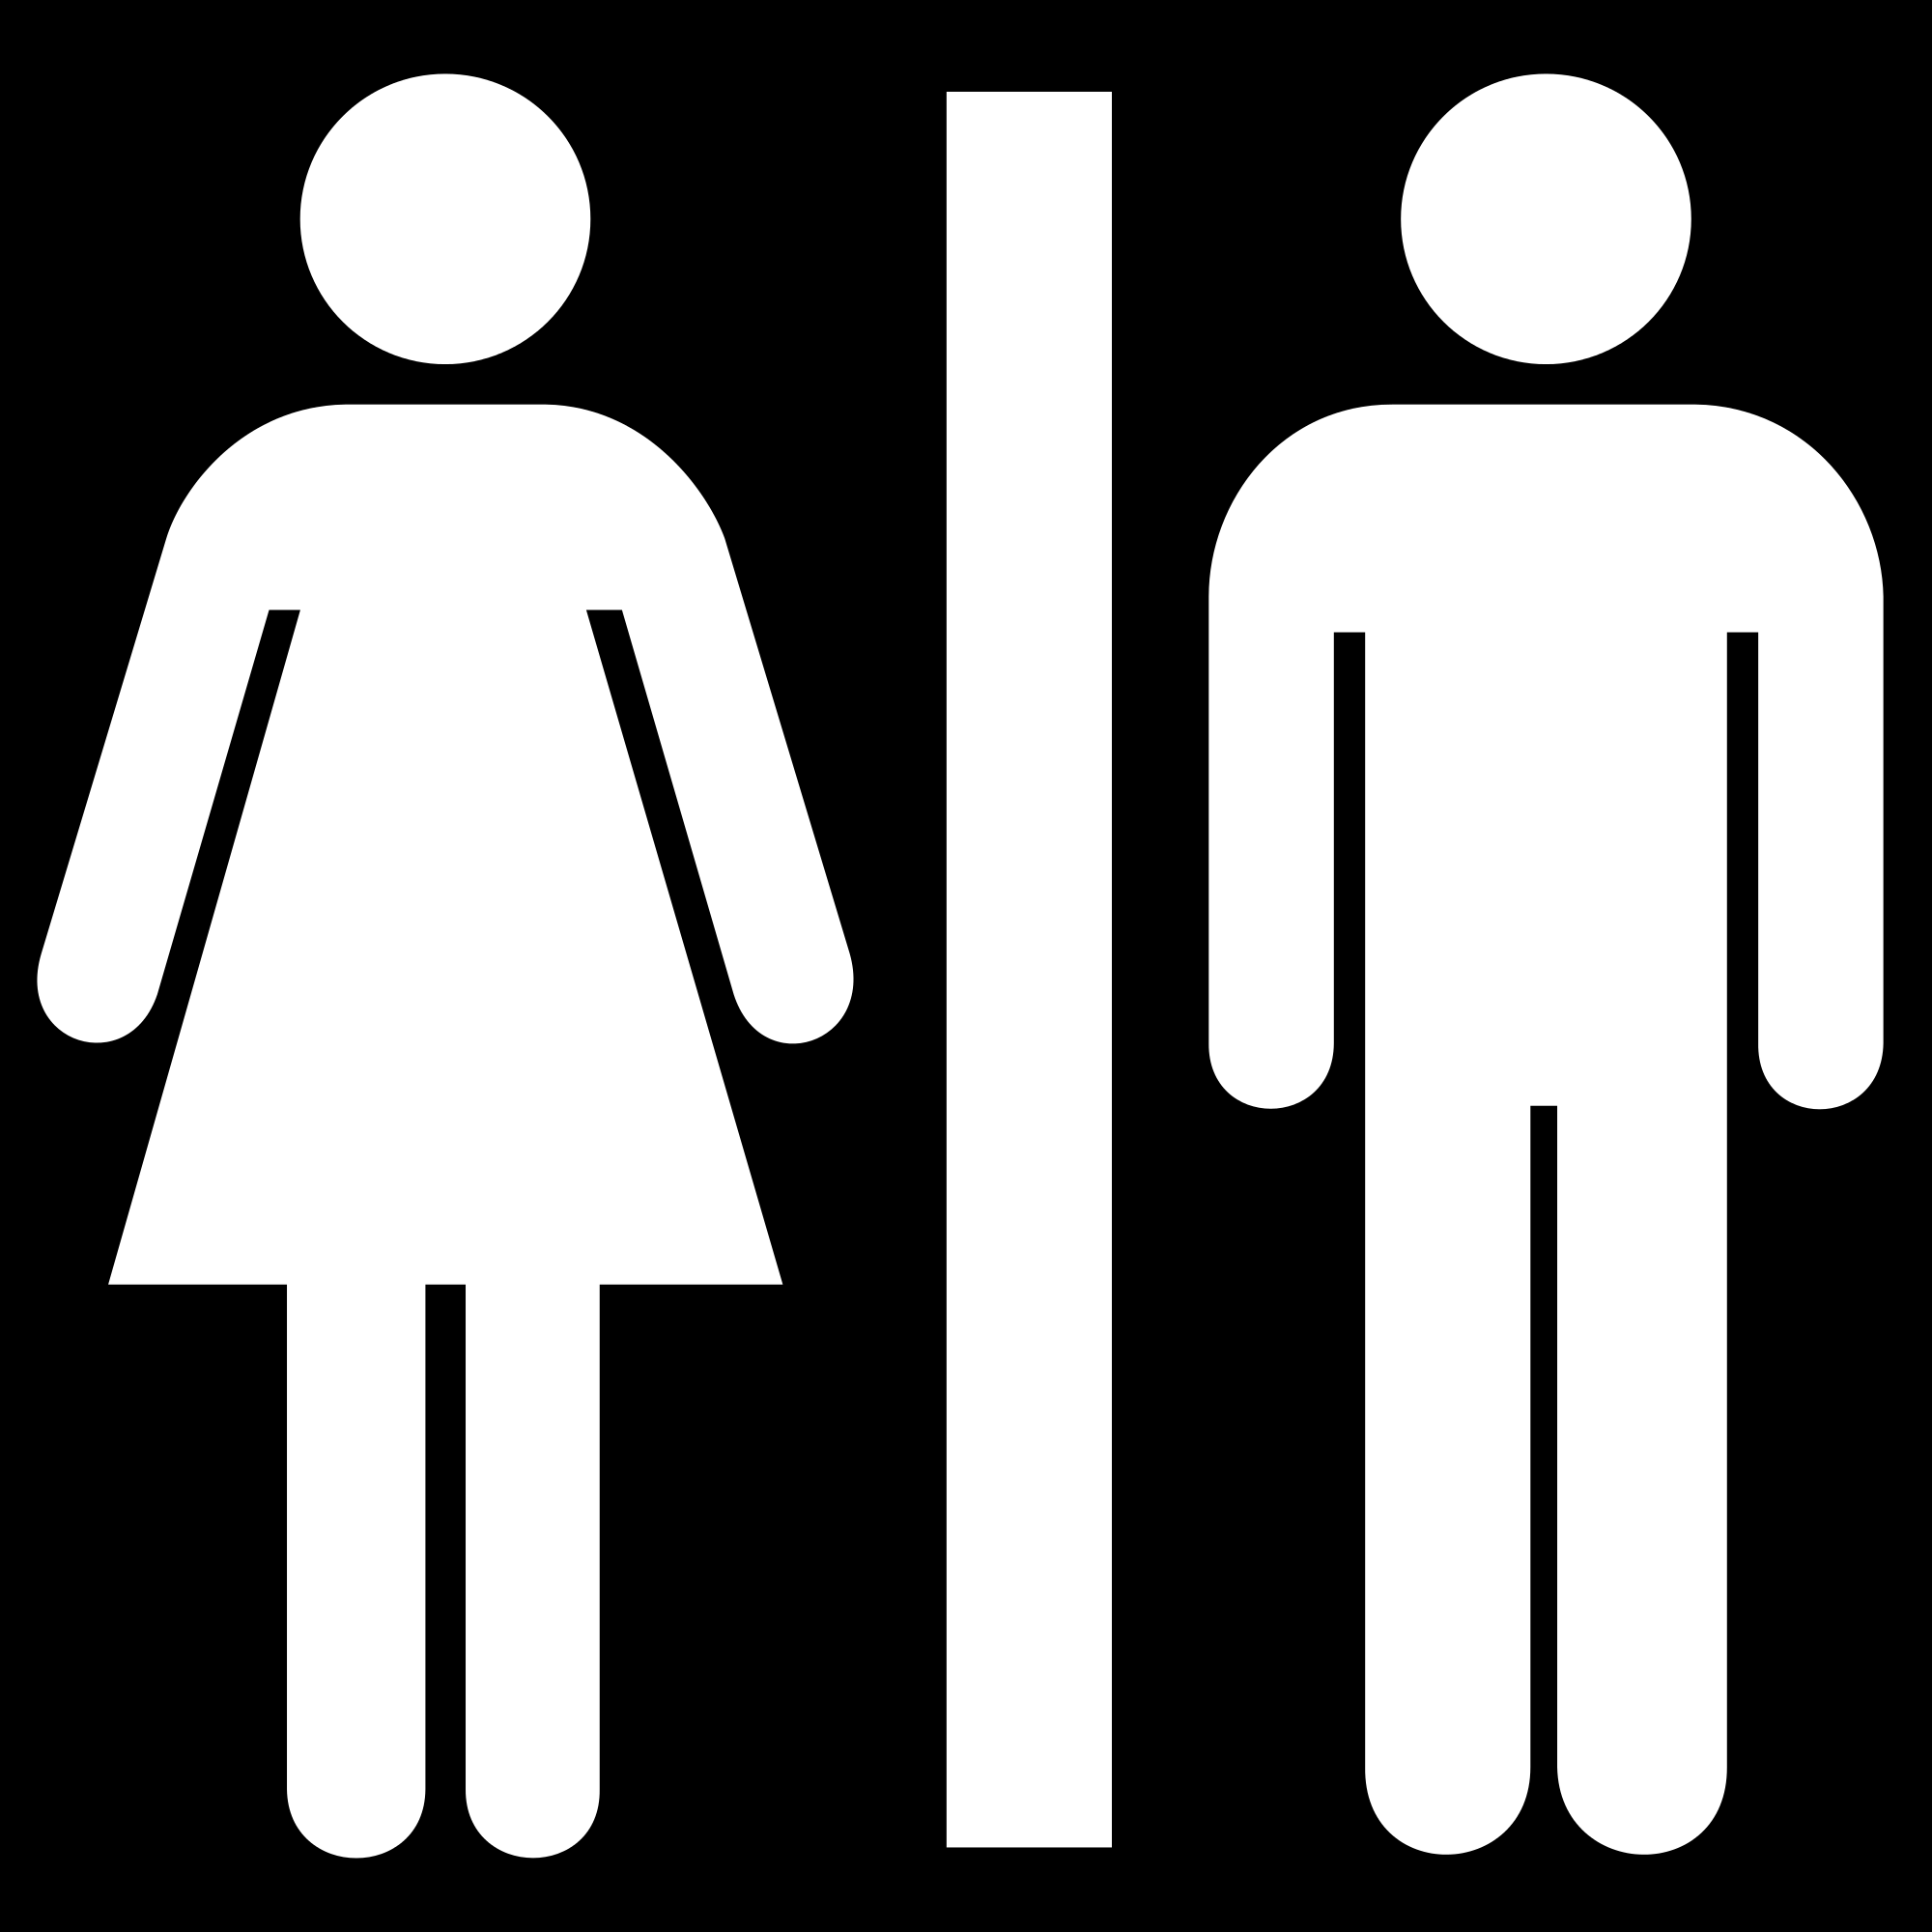 Toilet svg #434, Download drawings